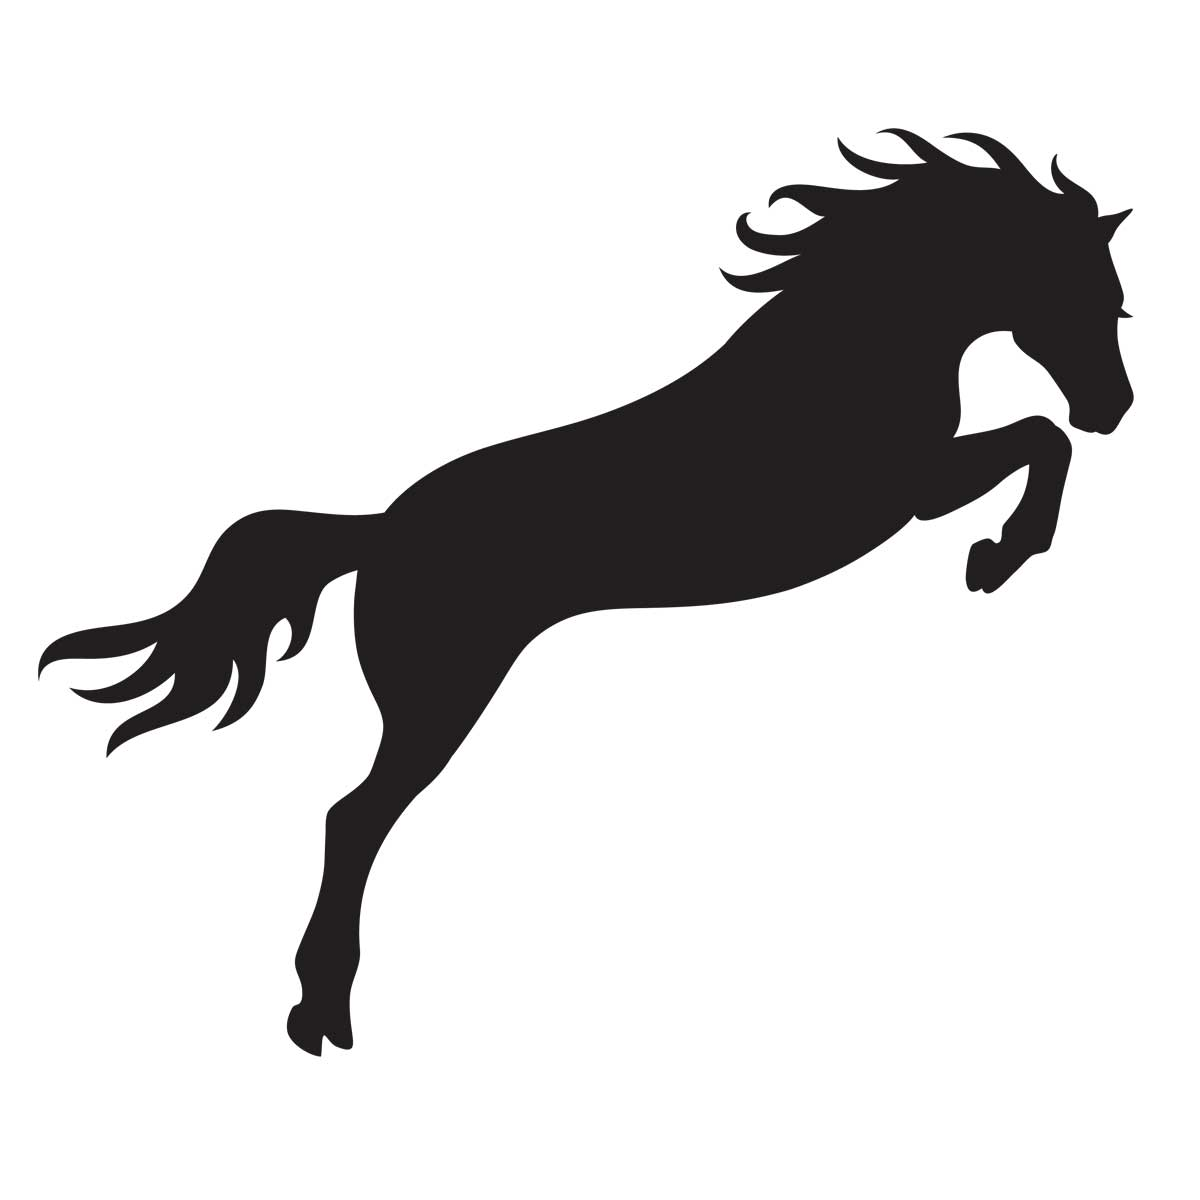 photograph regarding Horse Stencil Printable identify Leaping Horse Stencil for Glitter Tattoos for Horses